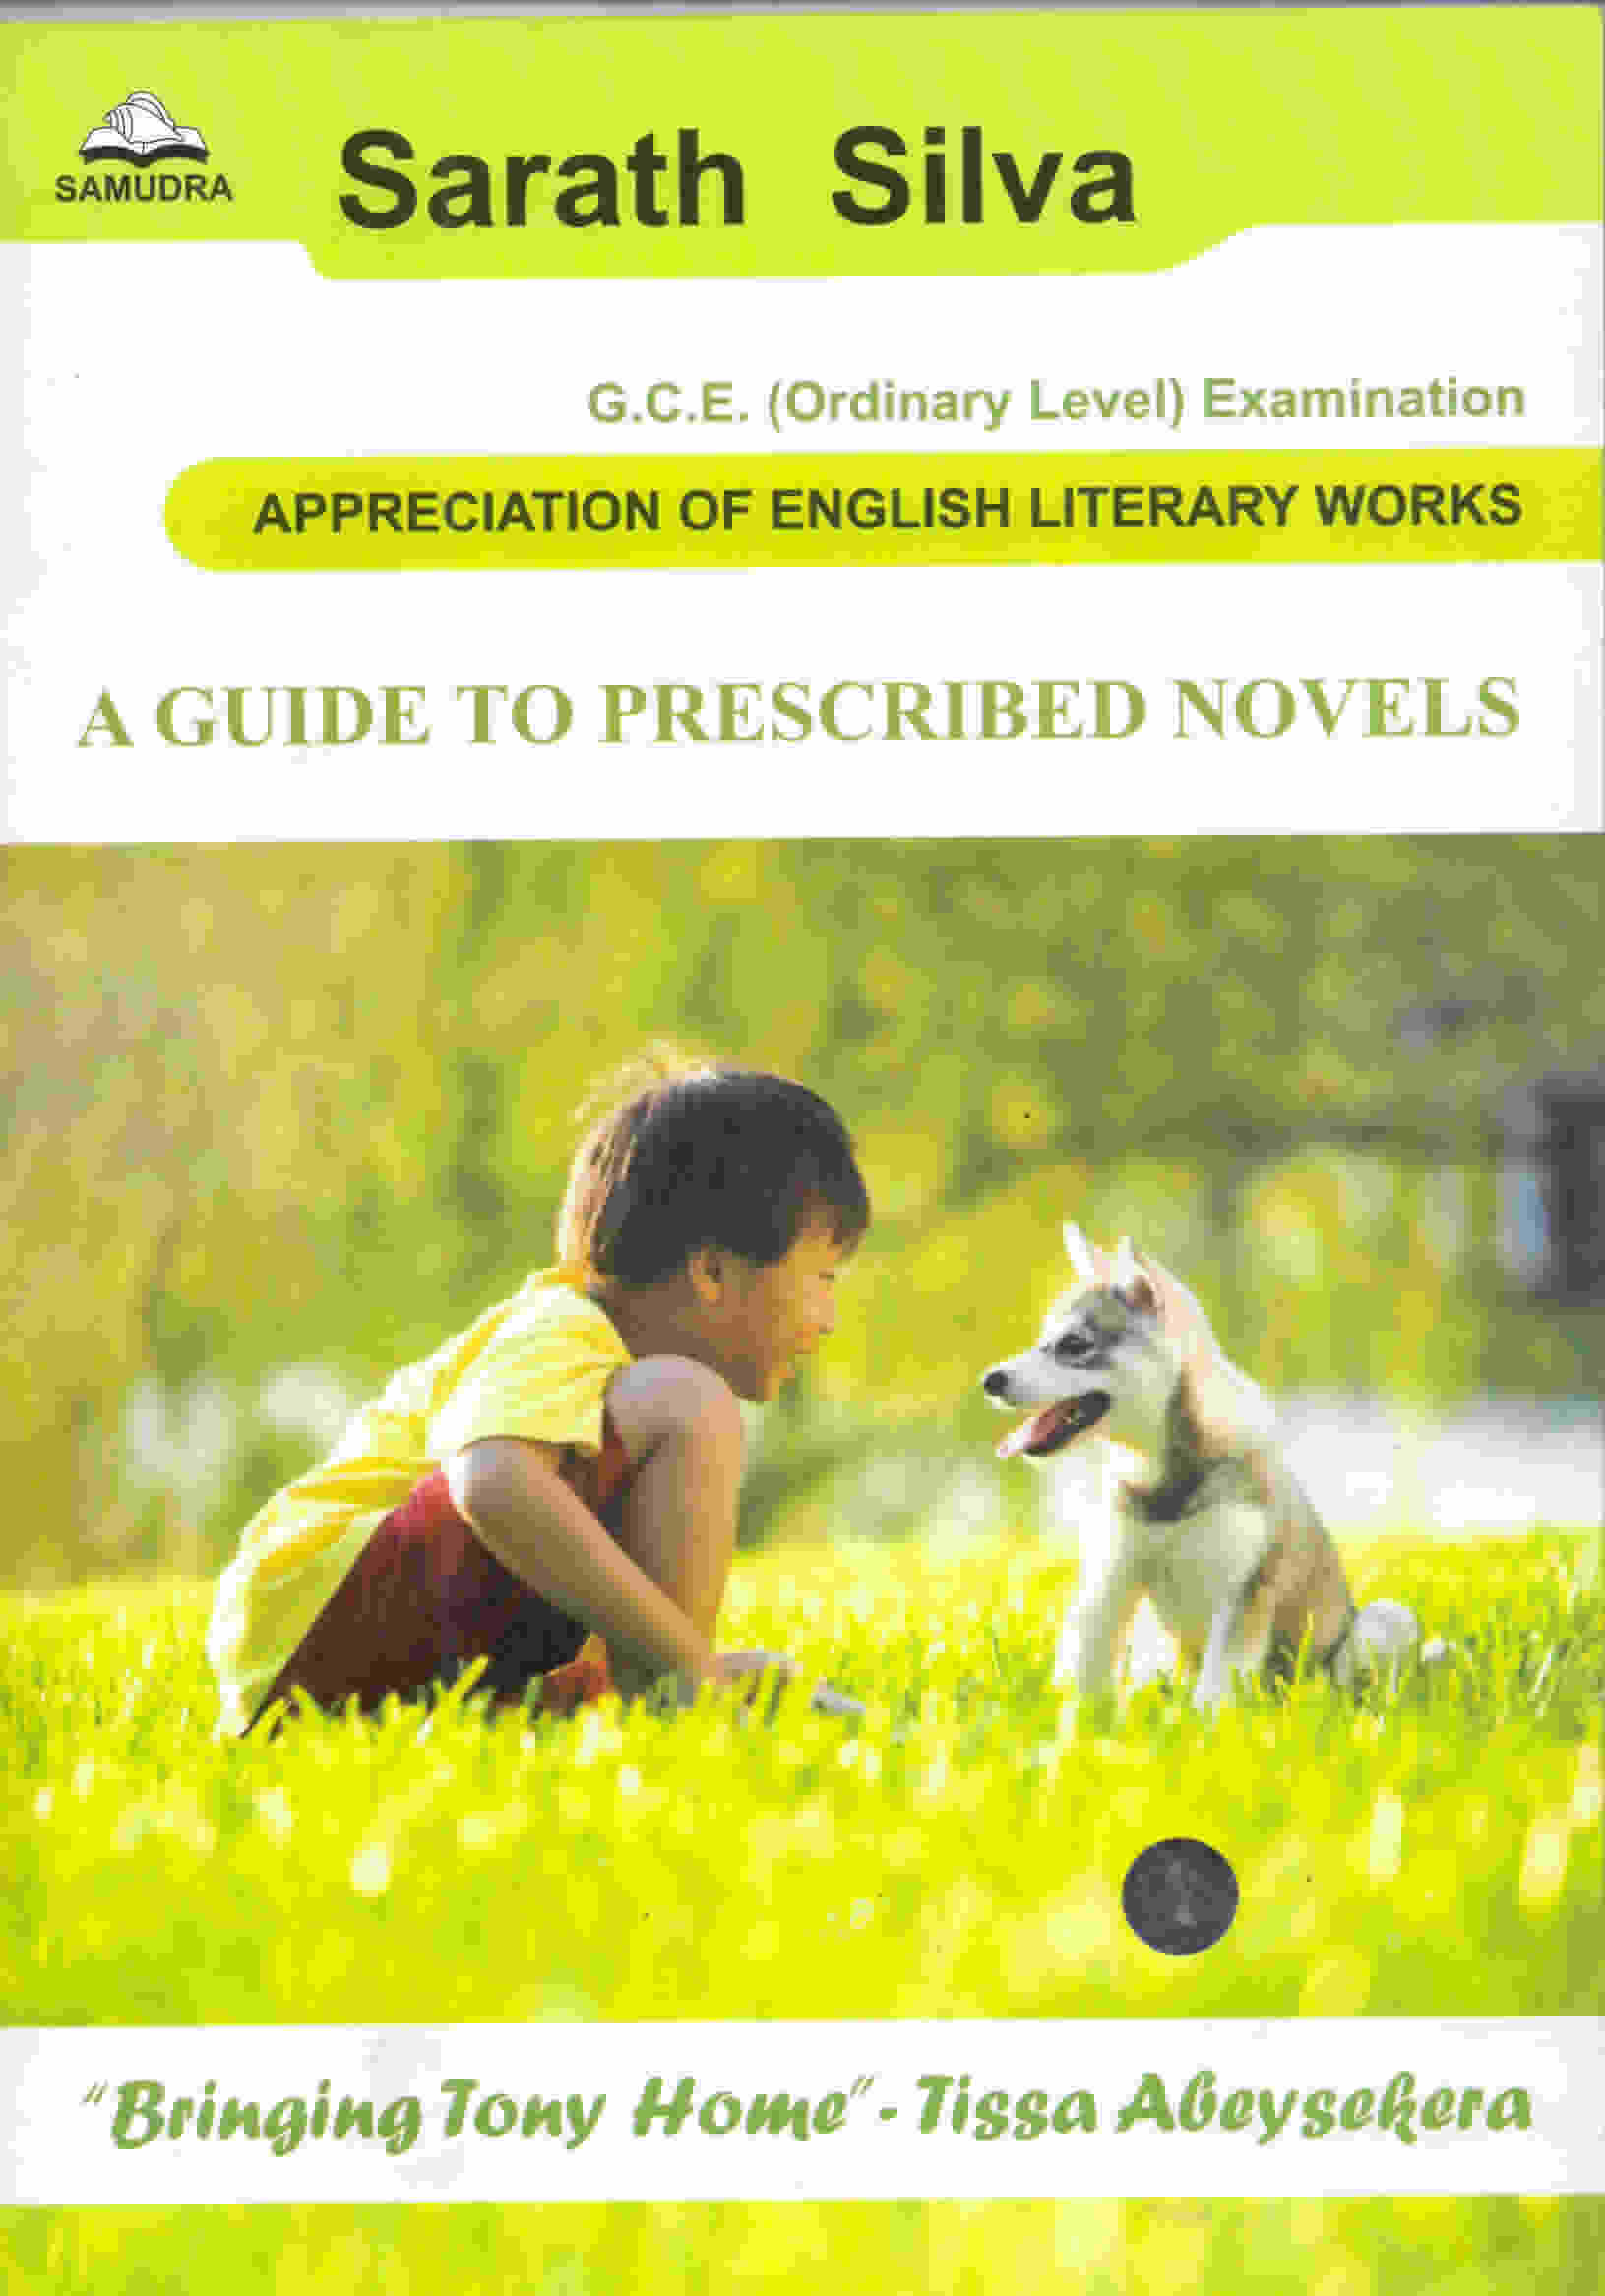 A Guide to prescribed Novels